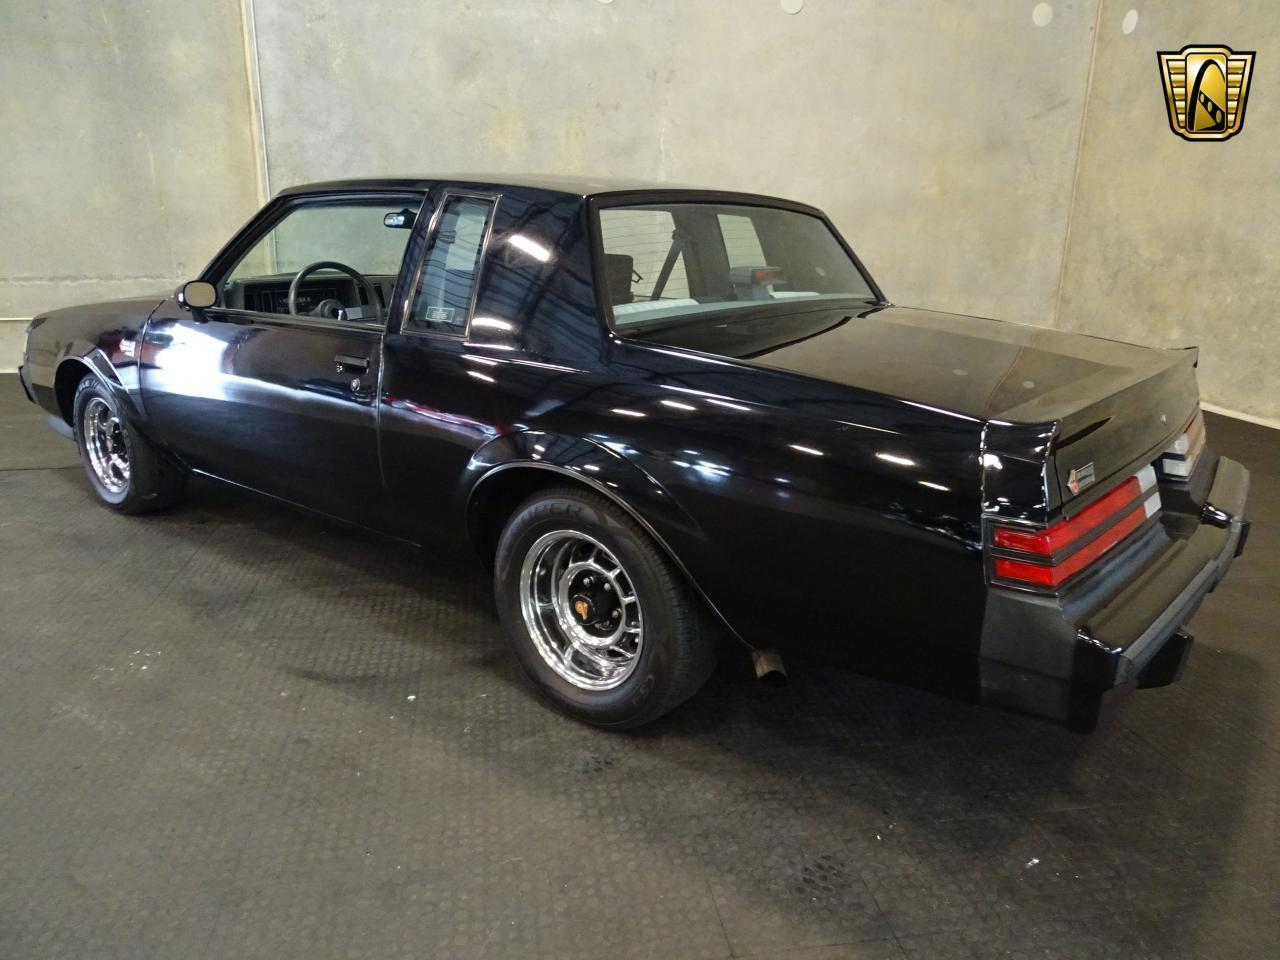 Large Picture of 1987 Buick Regal located in Ruskin Florida - $28,995.00 Offered by Gateway Classic Cars - Tampa - M4V5